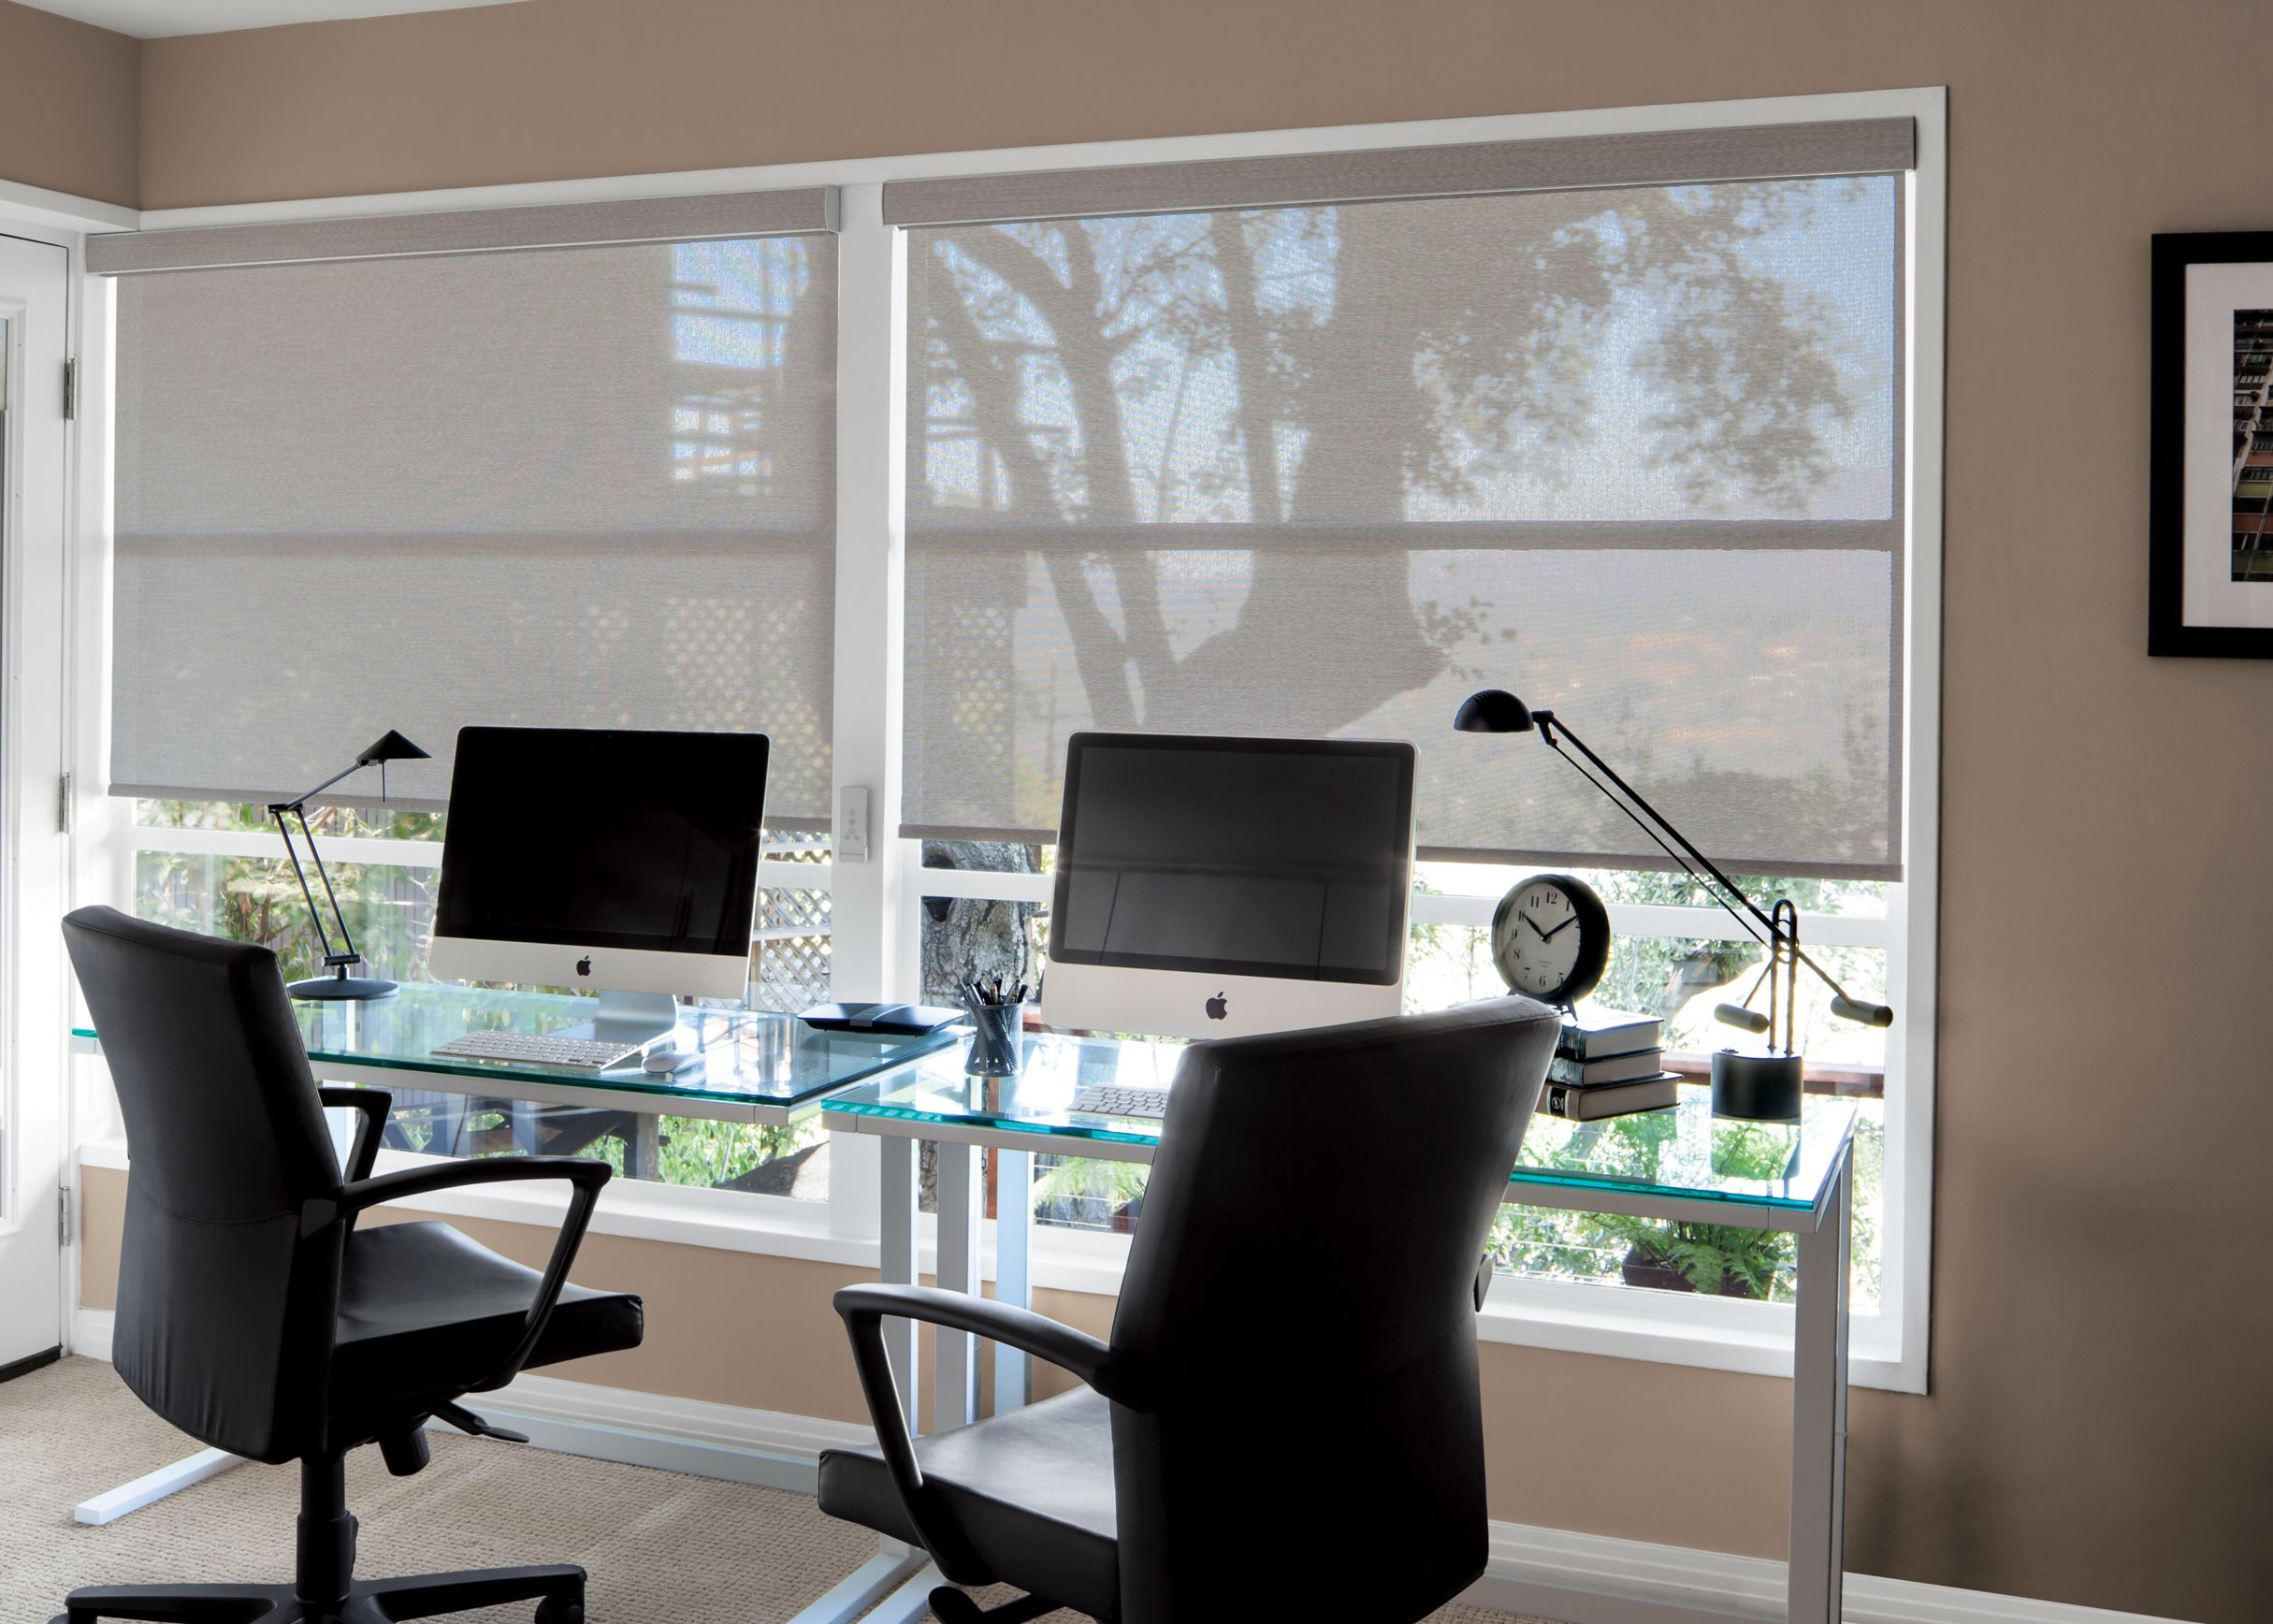 Privacy In Any Office Space Is Important. Solar Shades Provide Privacy  While Adding Color And Sophistication To A Space.